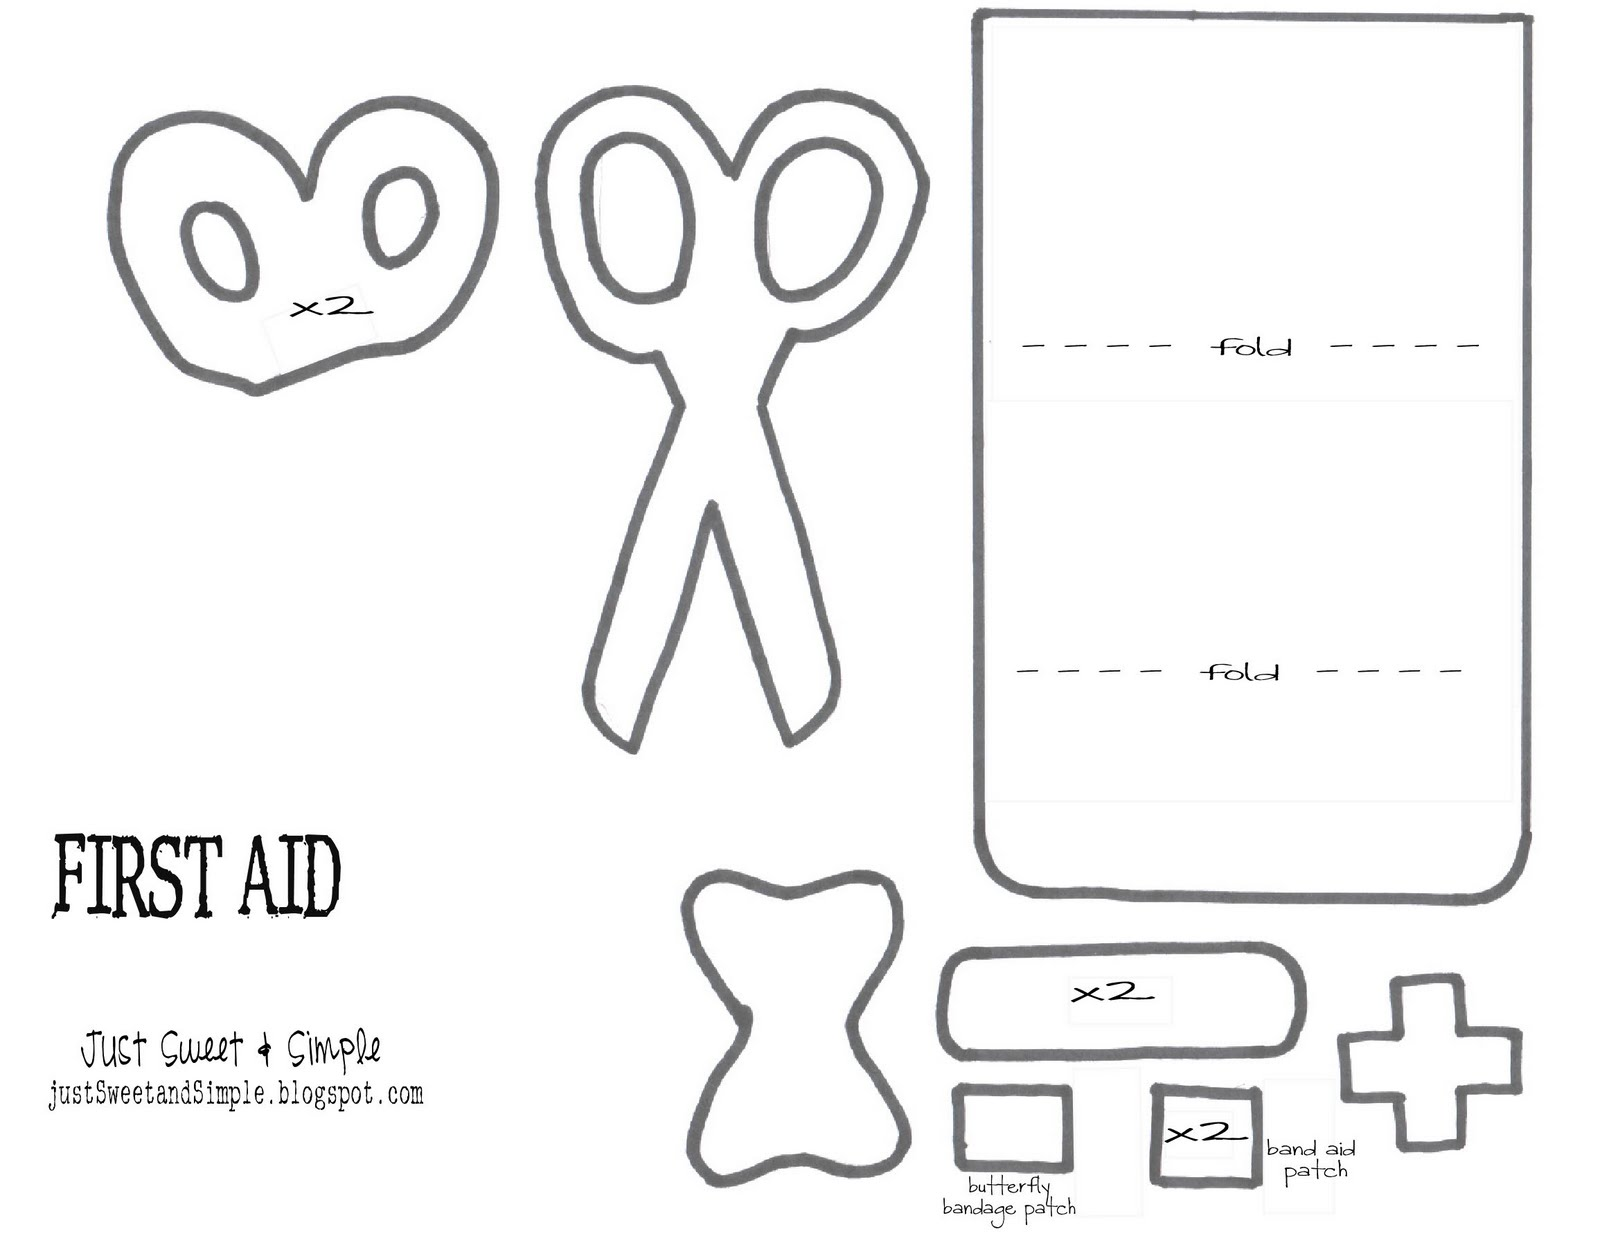 Free Worksheet First Aid Worksheets For Kids just sweet and simple april 2011 the activities dont have to be hand made you can fill book with anything your child likes but i did include some simplistic templates made